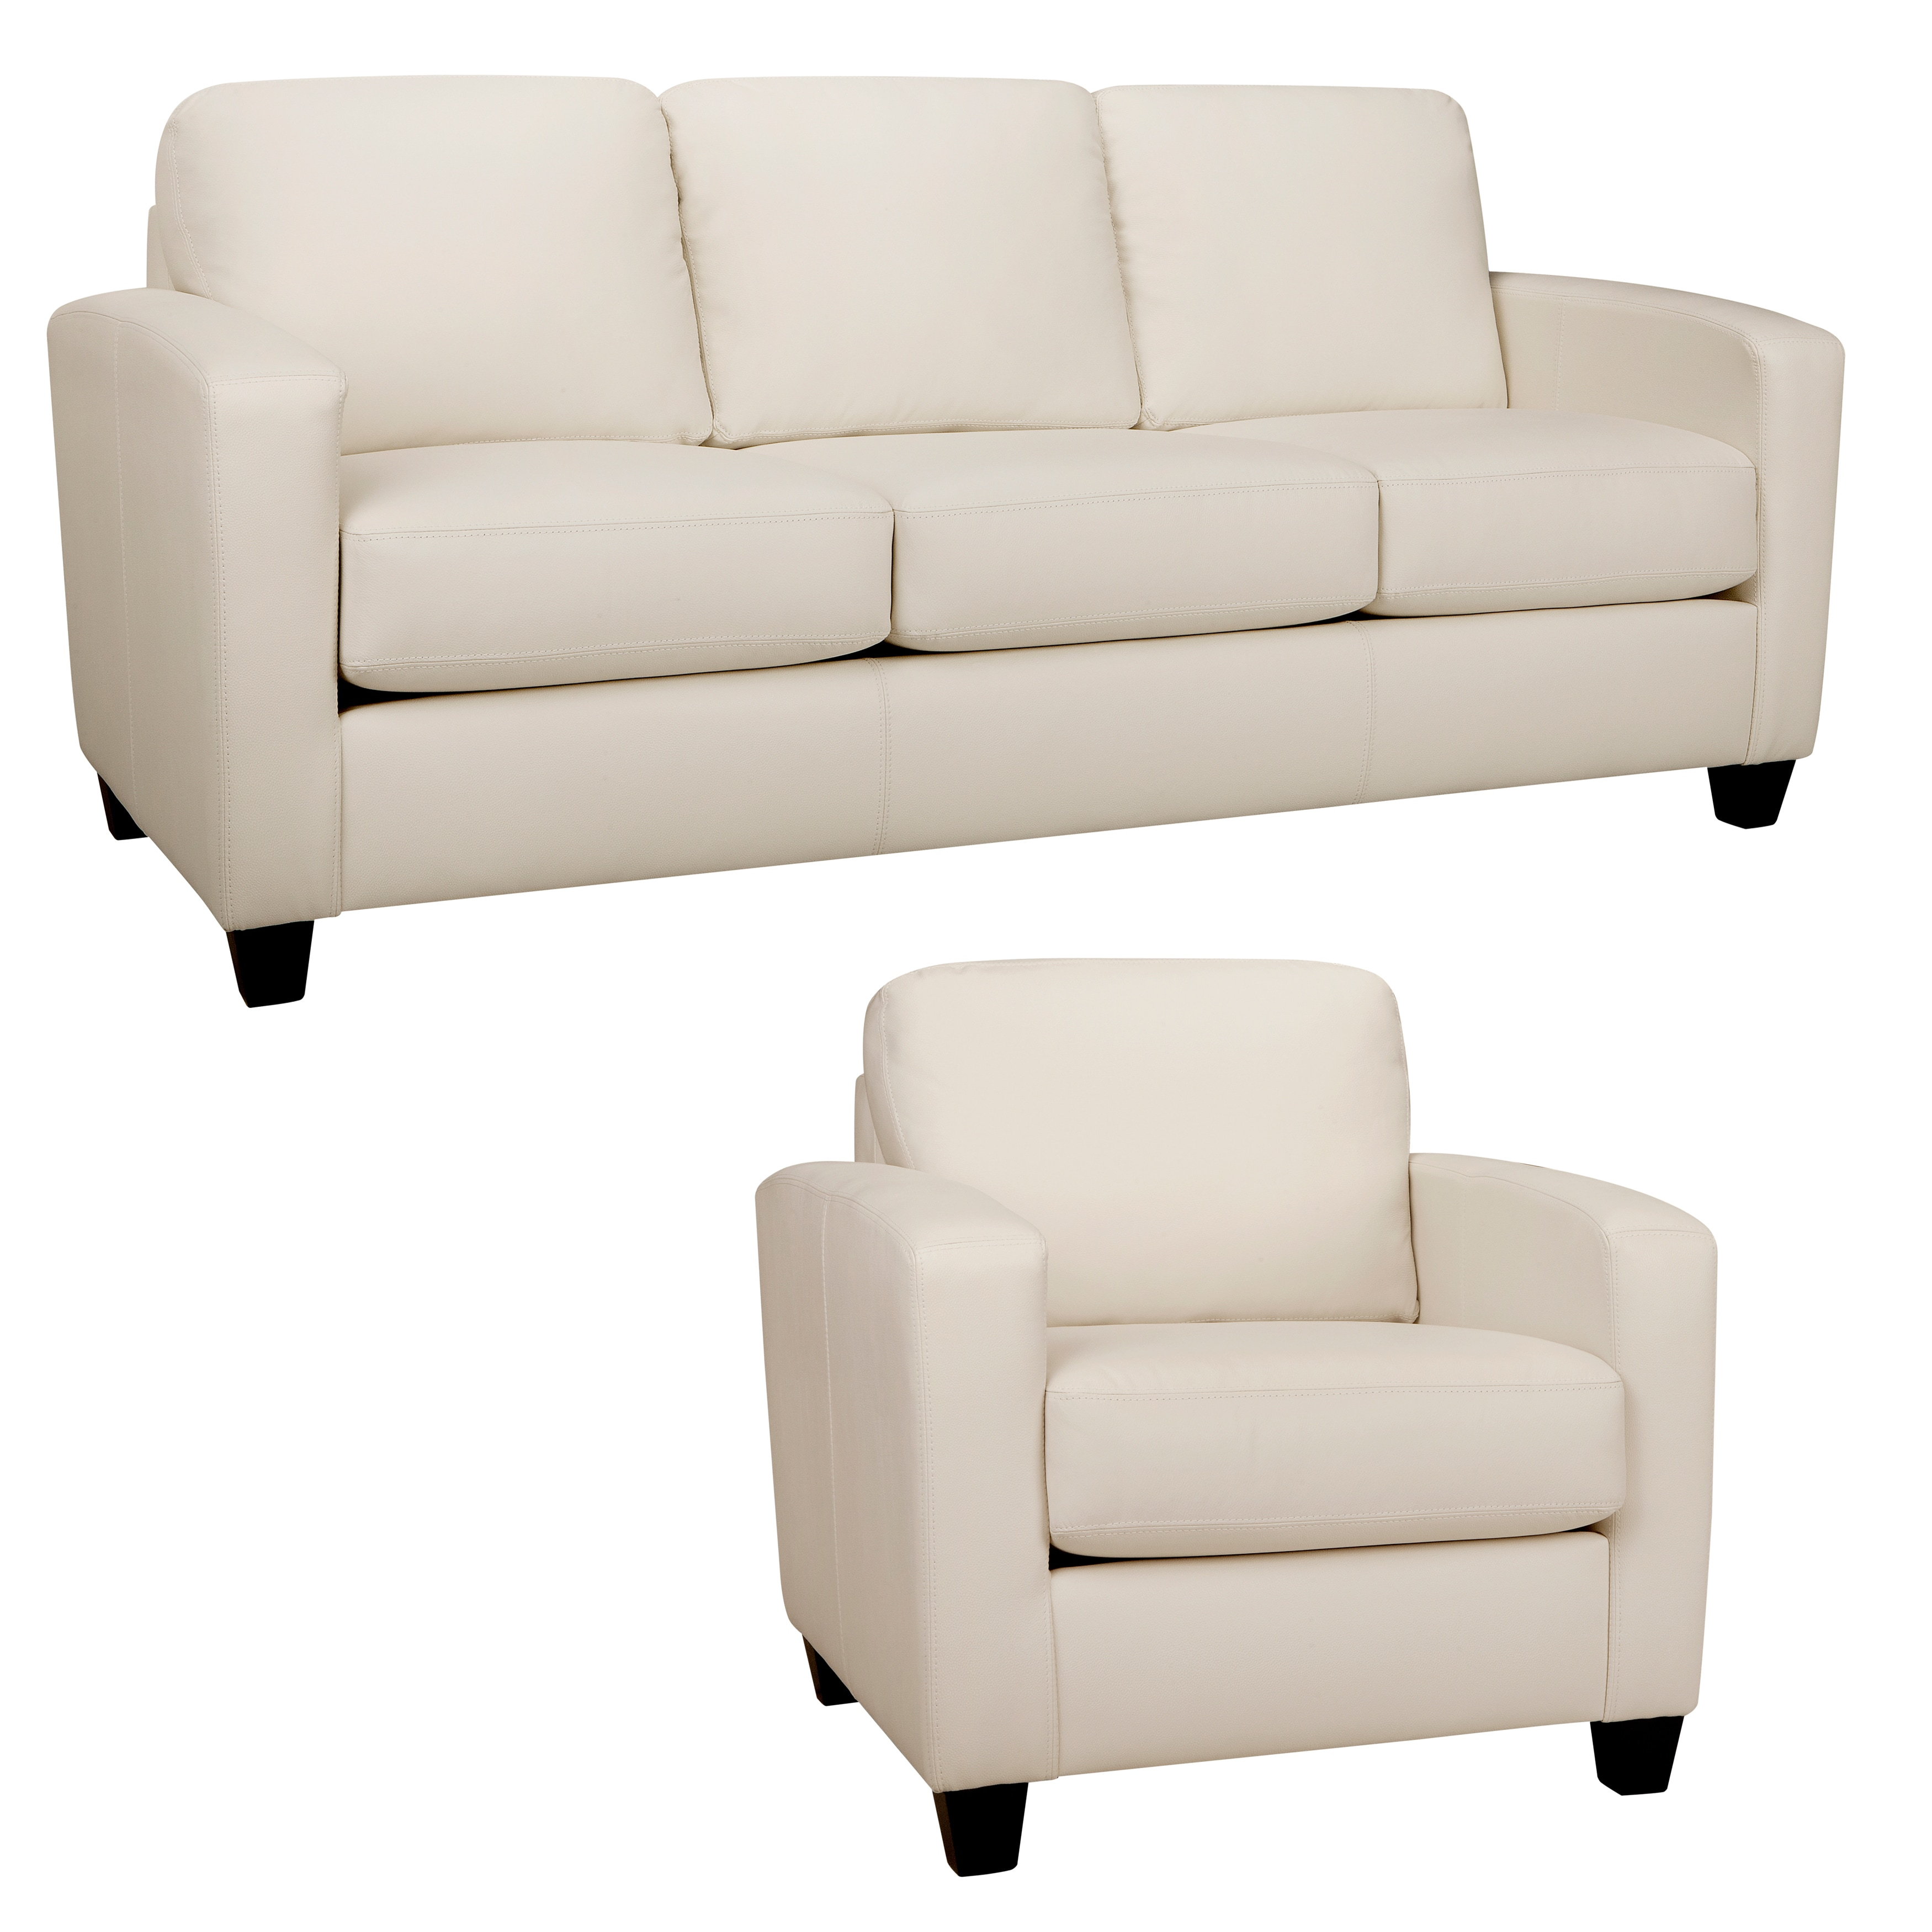 Bryce White Italian Leather Sofa And Chair On Free Shipping Today 8533436